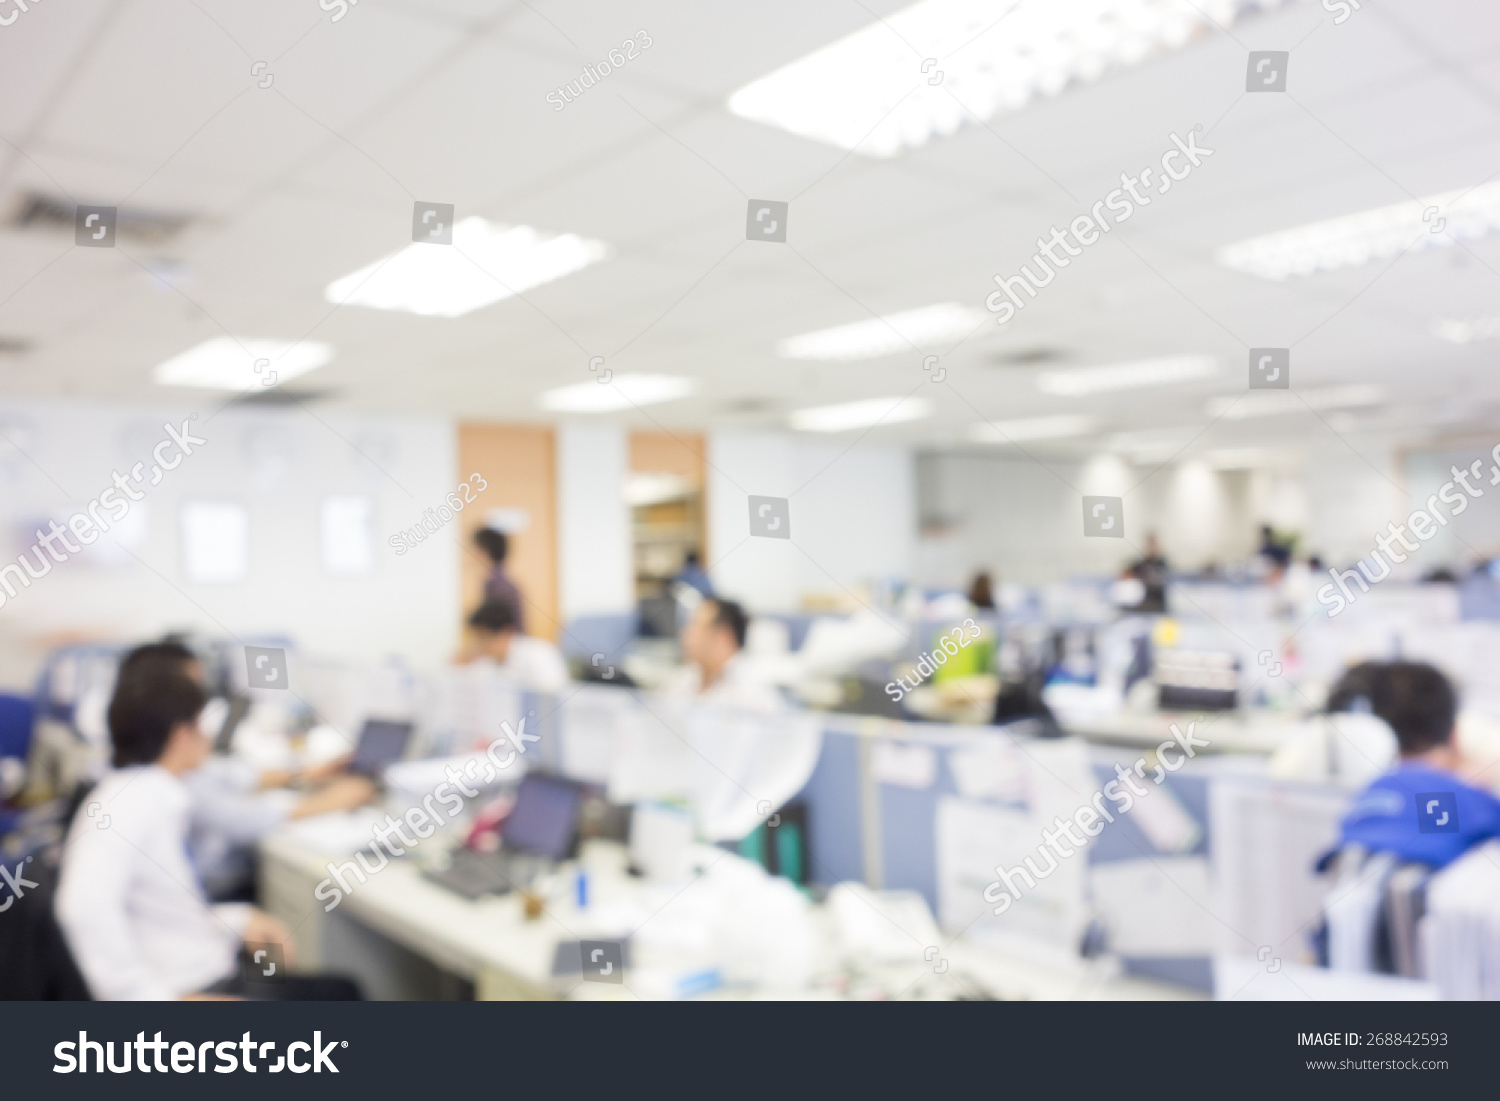 Blurred office background template create montage blurred office background template for create montage product display voltagebd Images